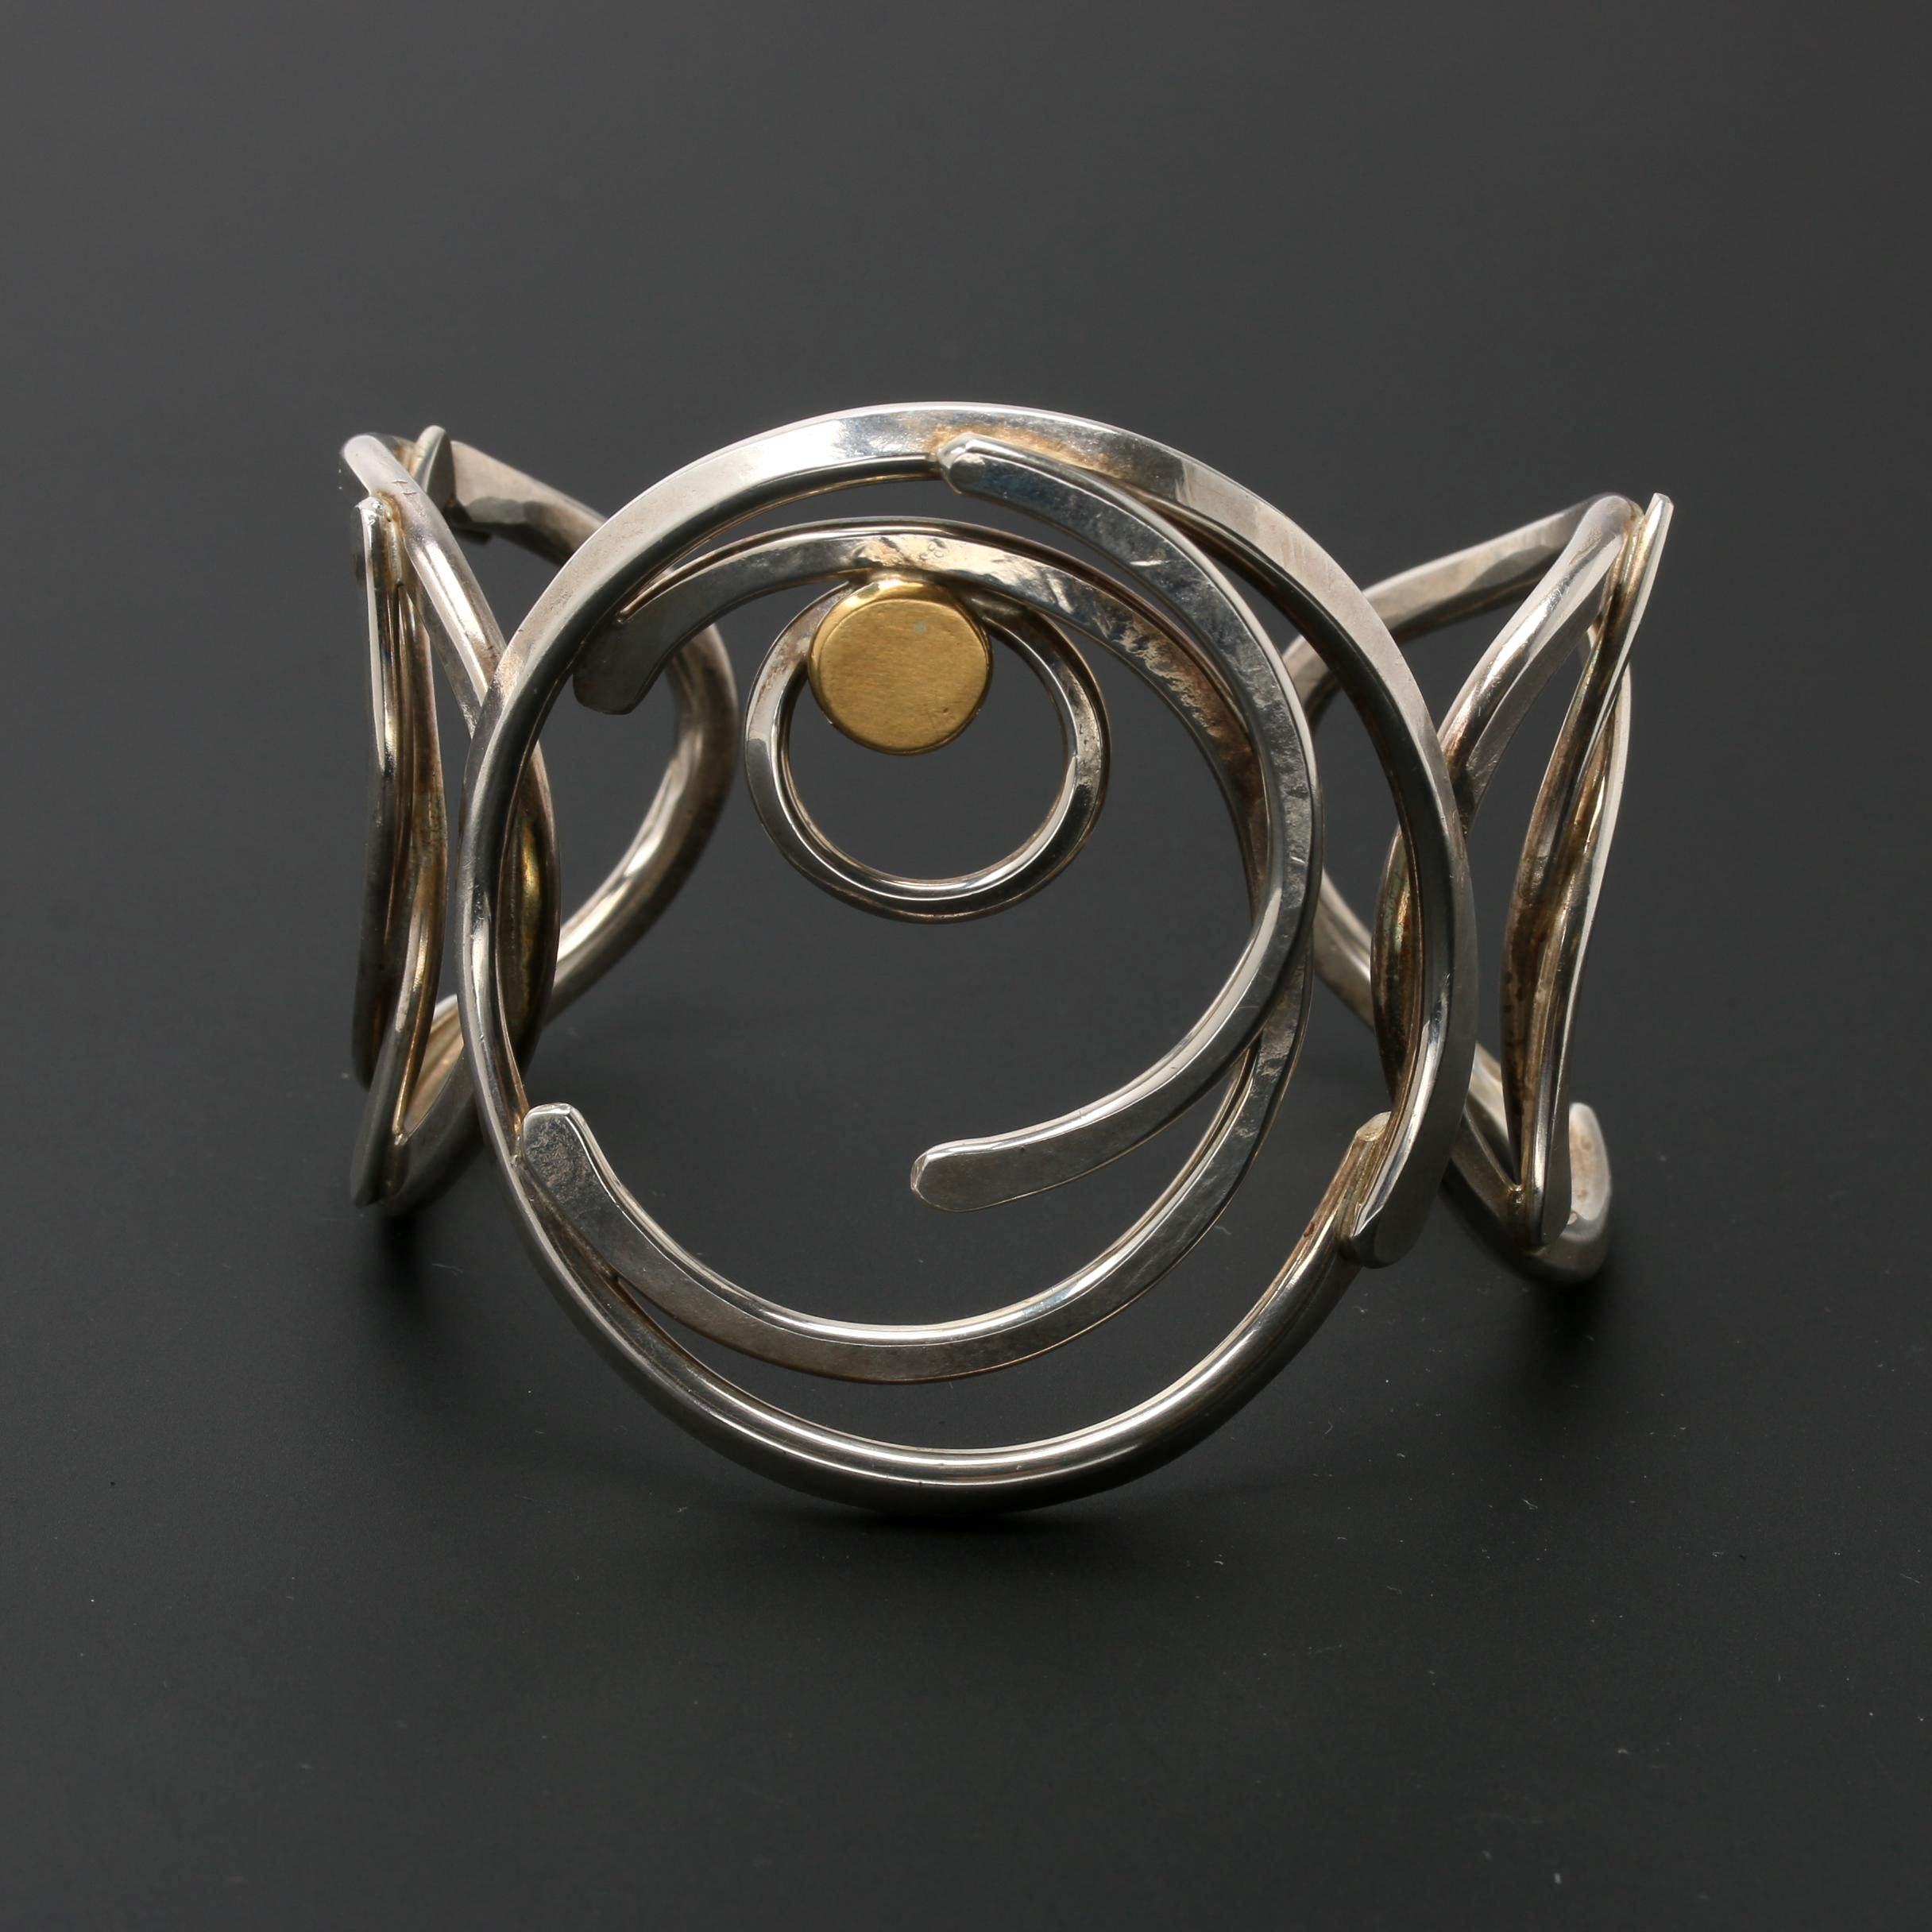 Sterling Silver Cuff Bracelet with 18K Gold Accent